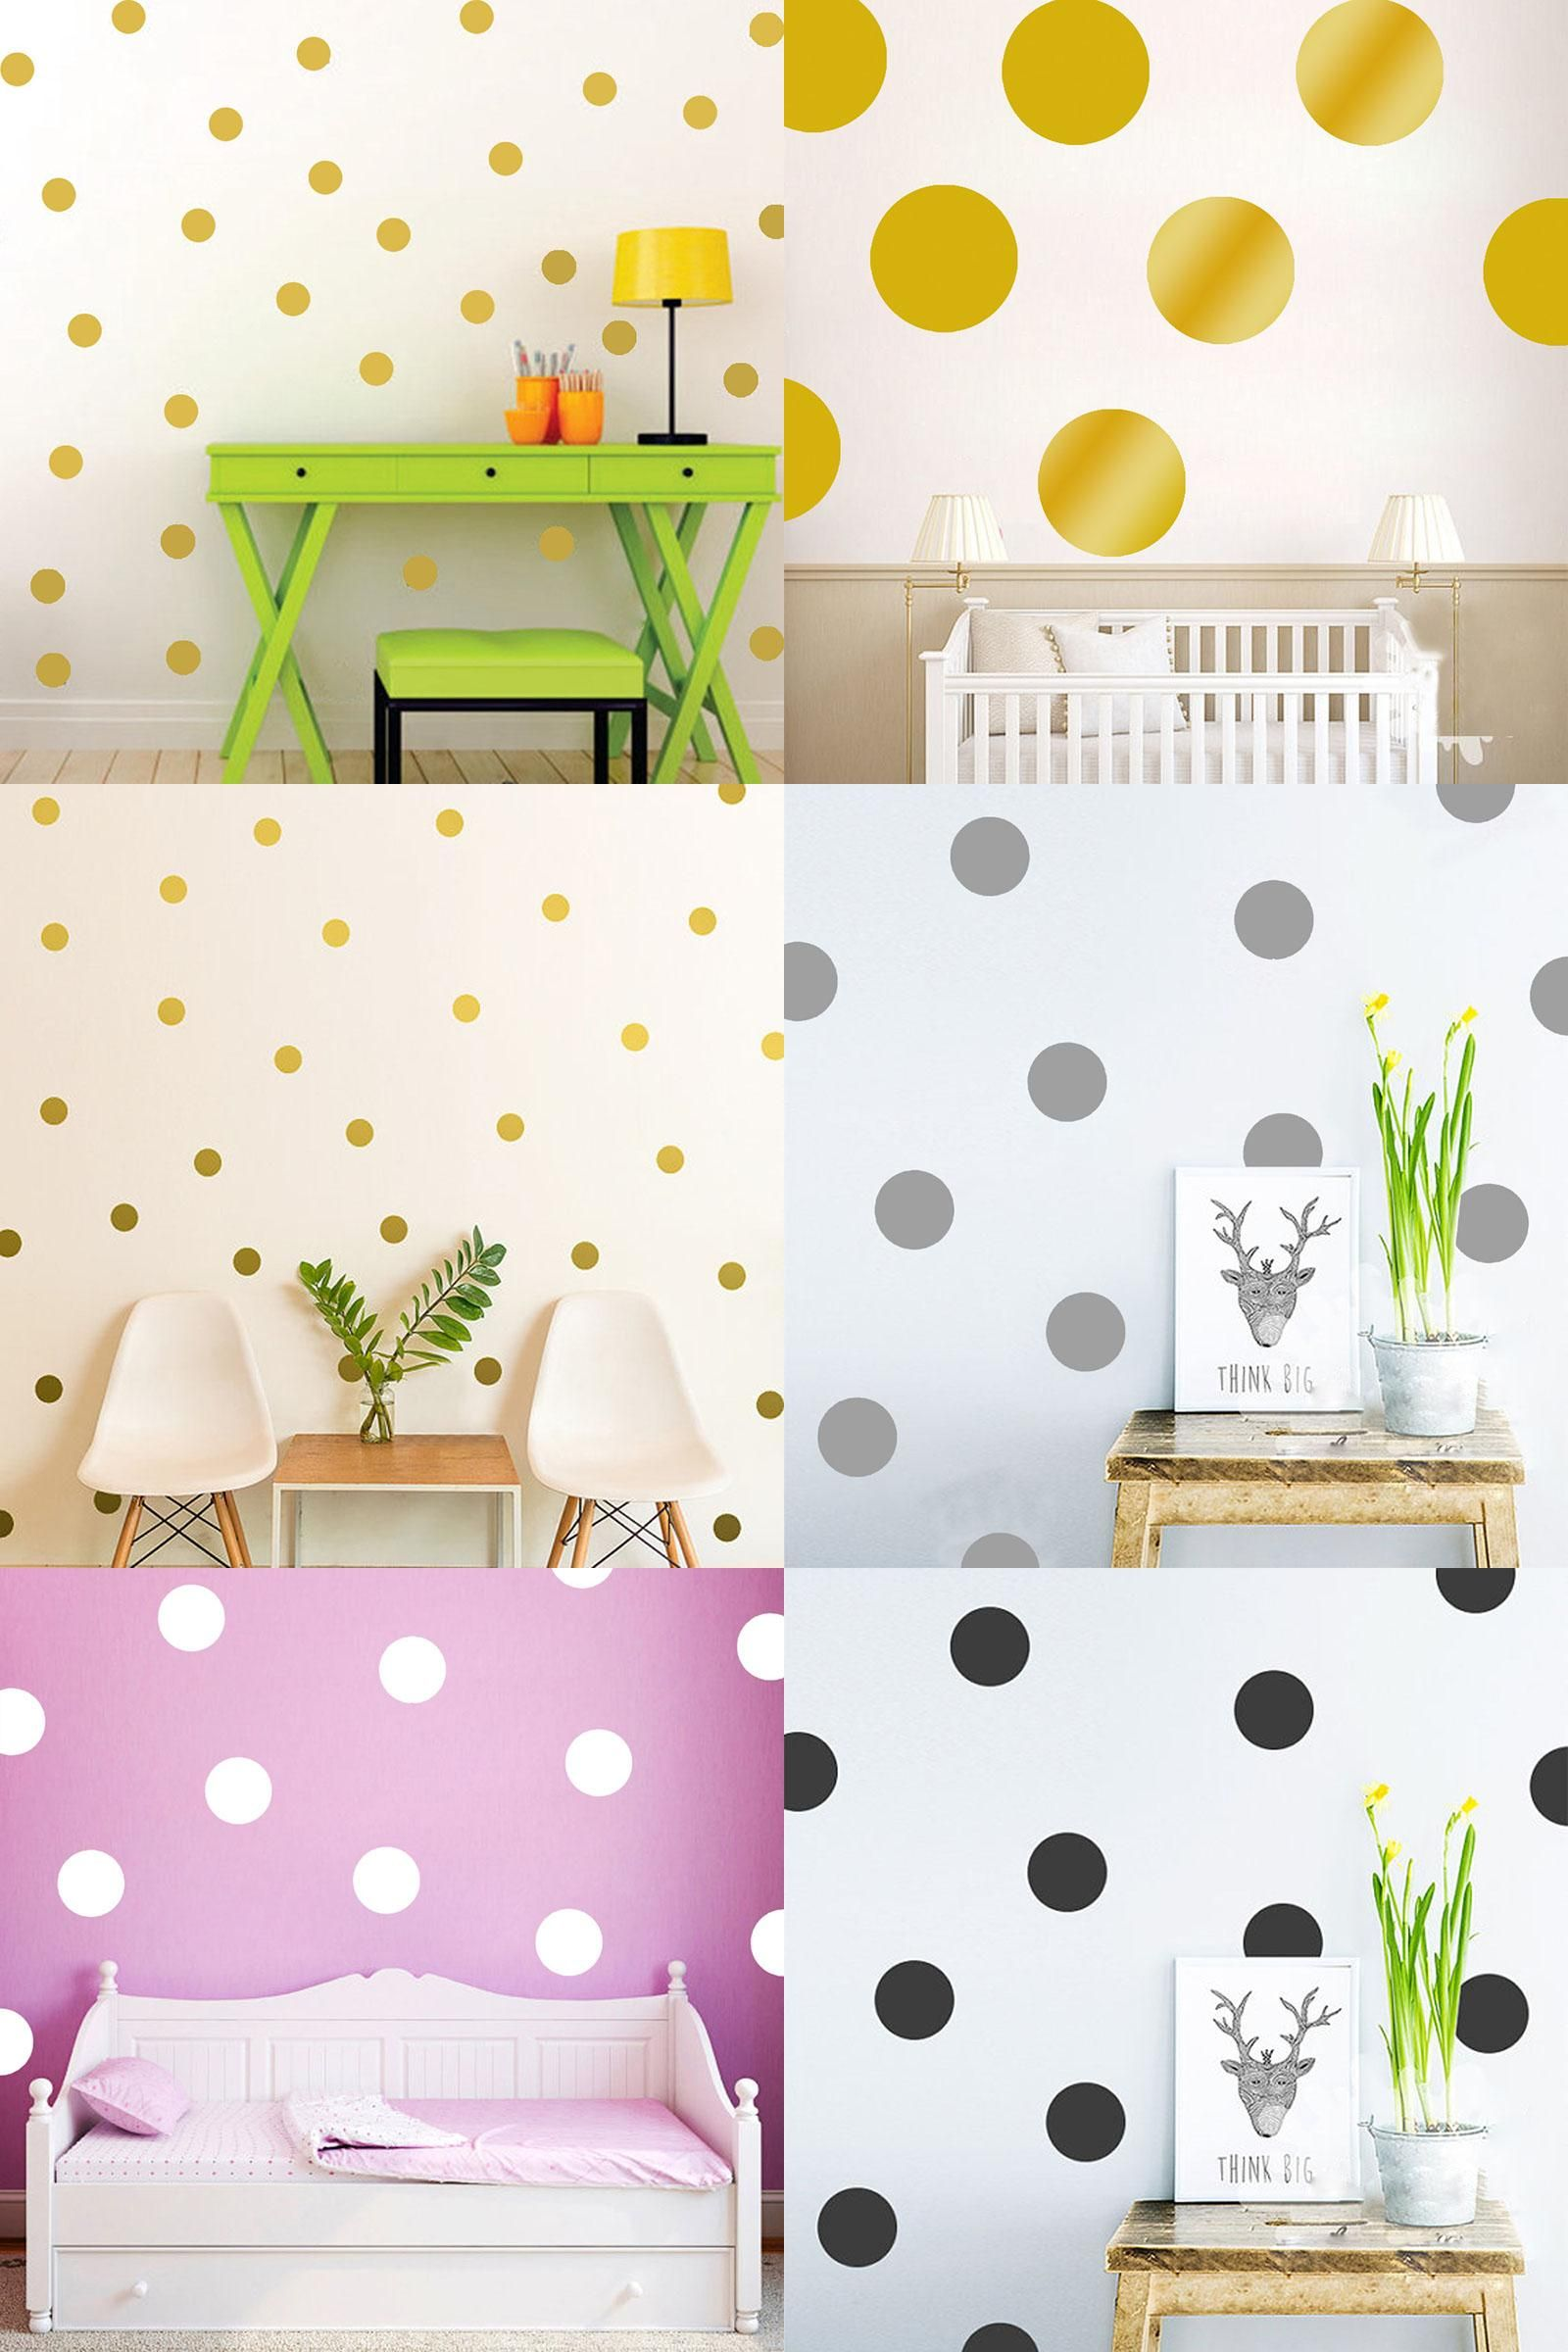 Visit to buy polka dot wall stickers for kids rooms gold polka dot